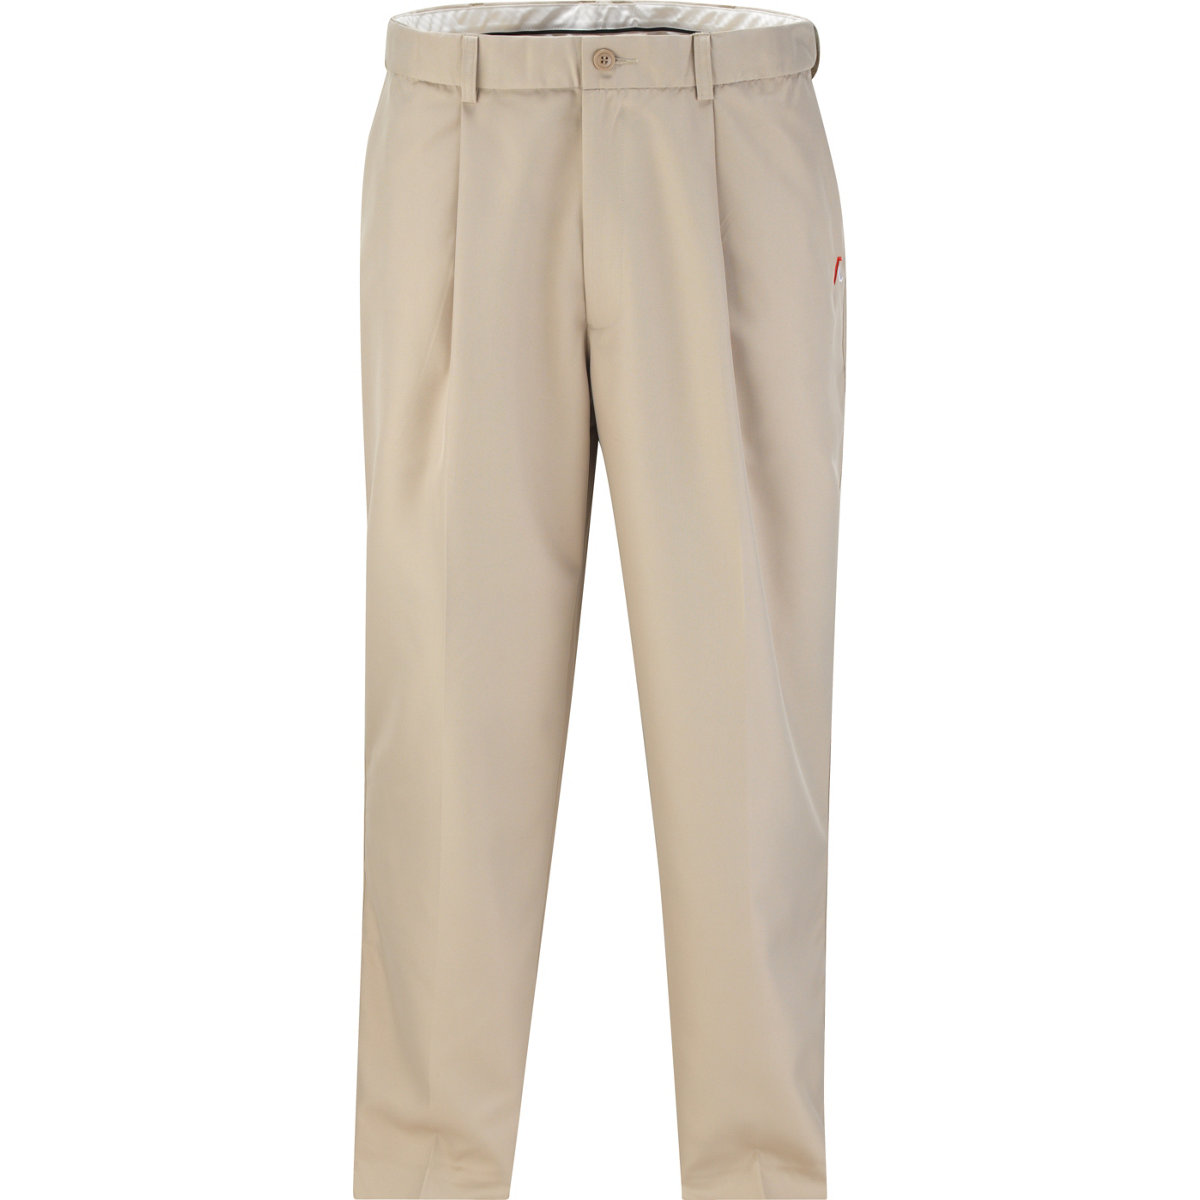 Flat Front Or Pleated Pants